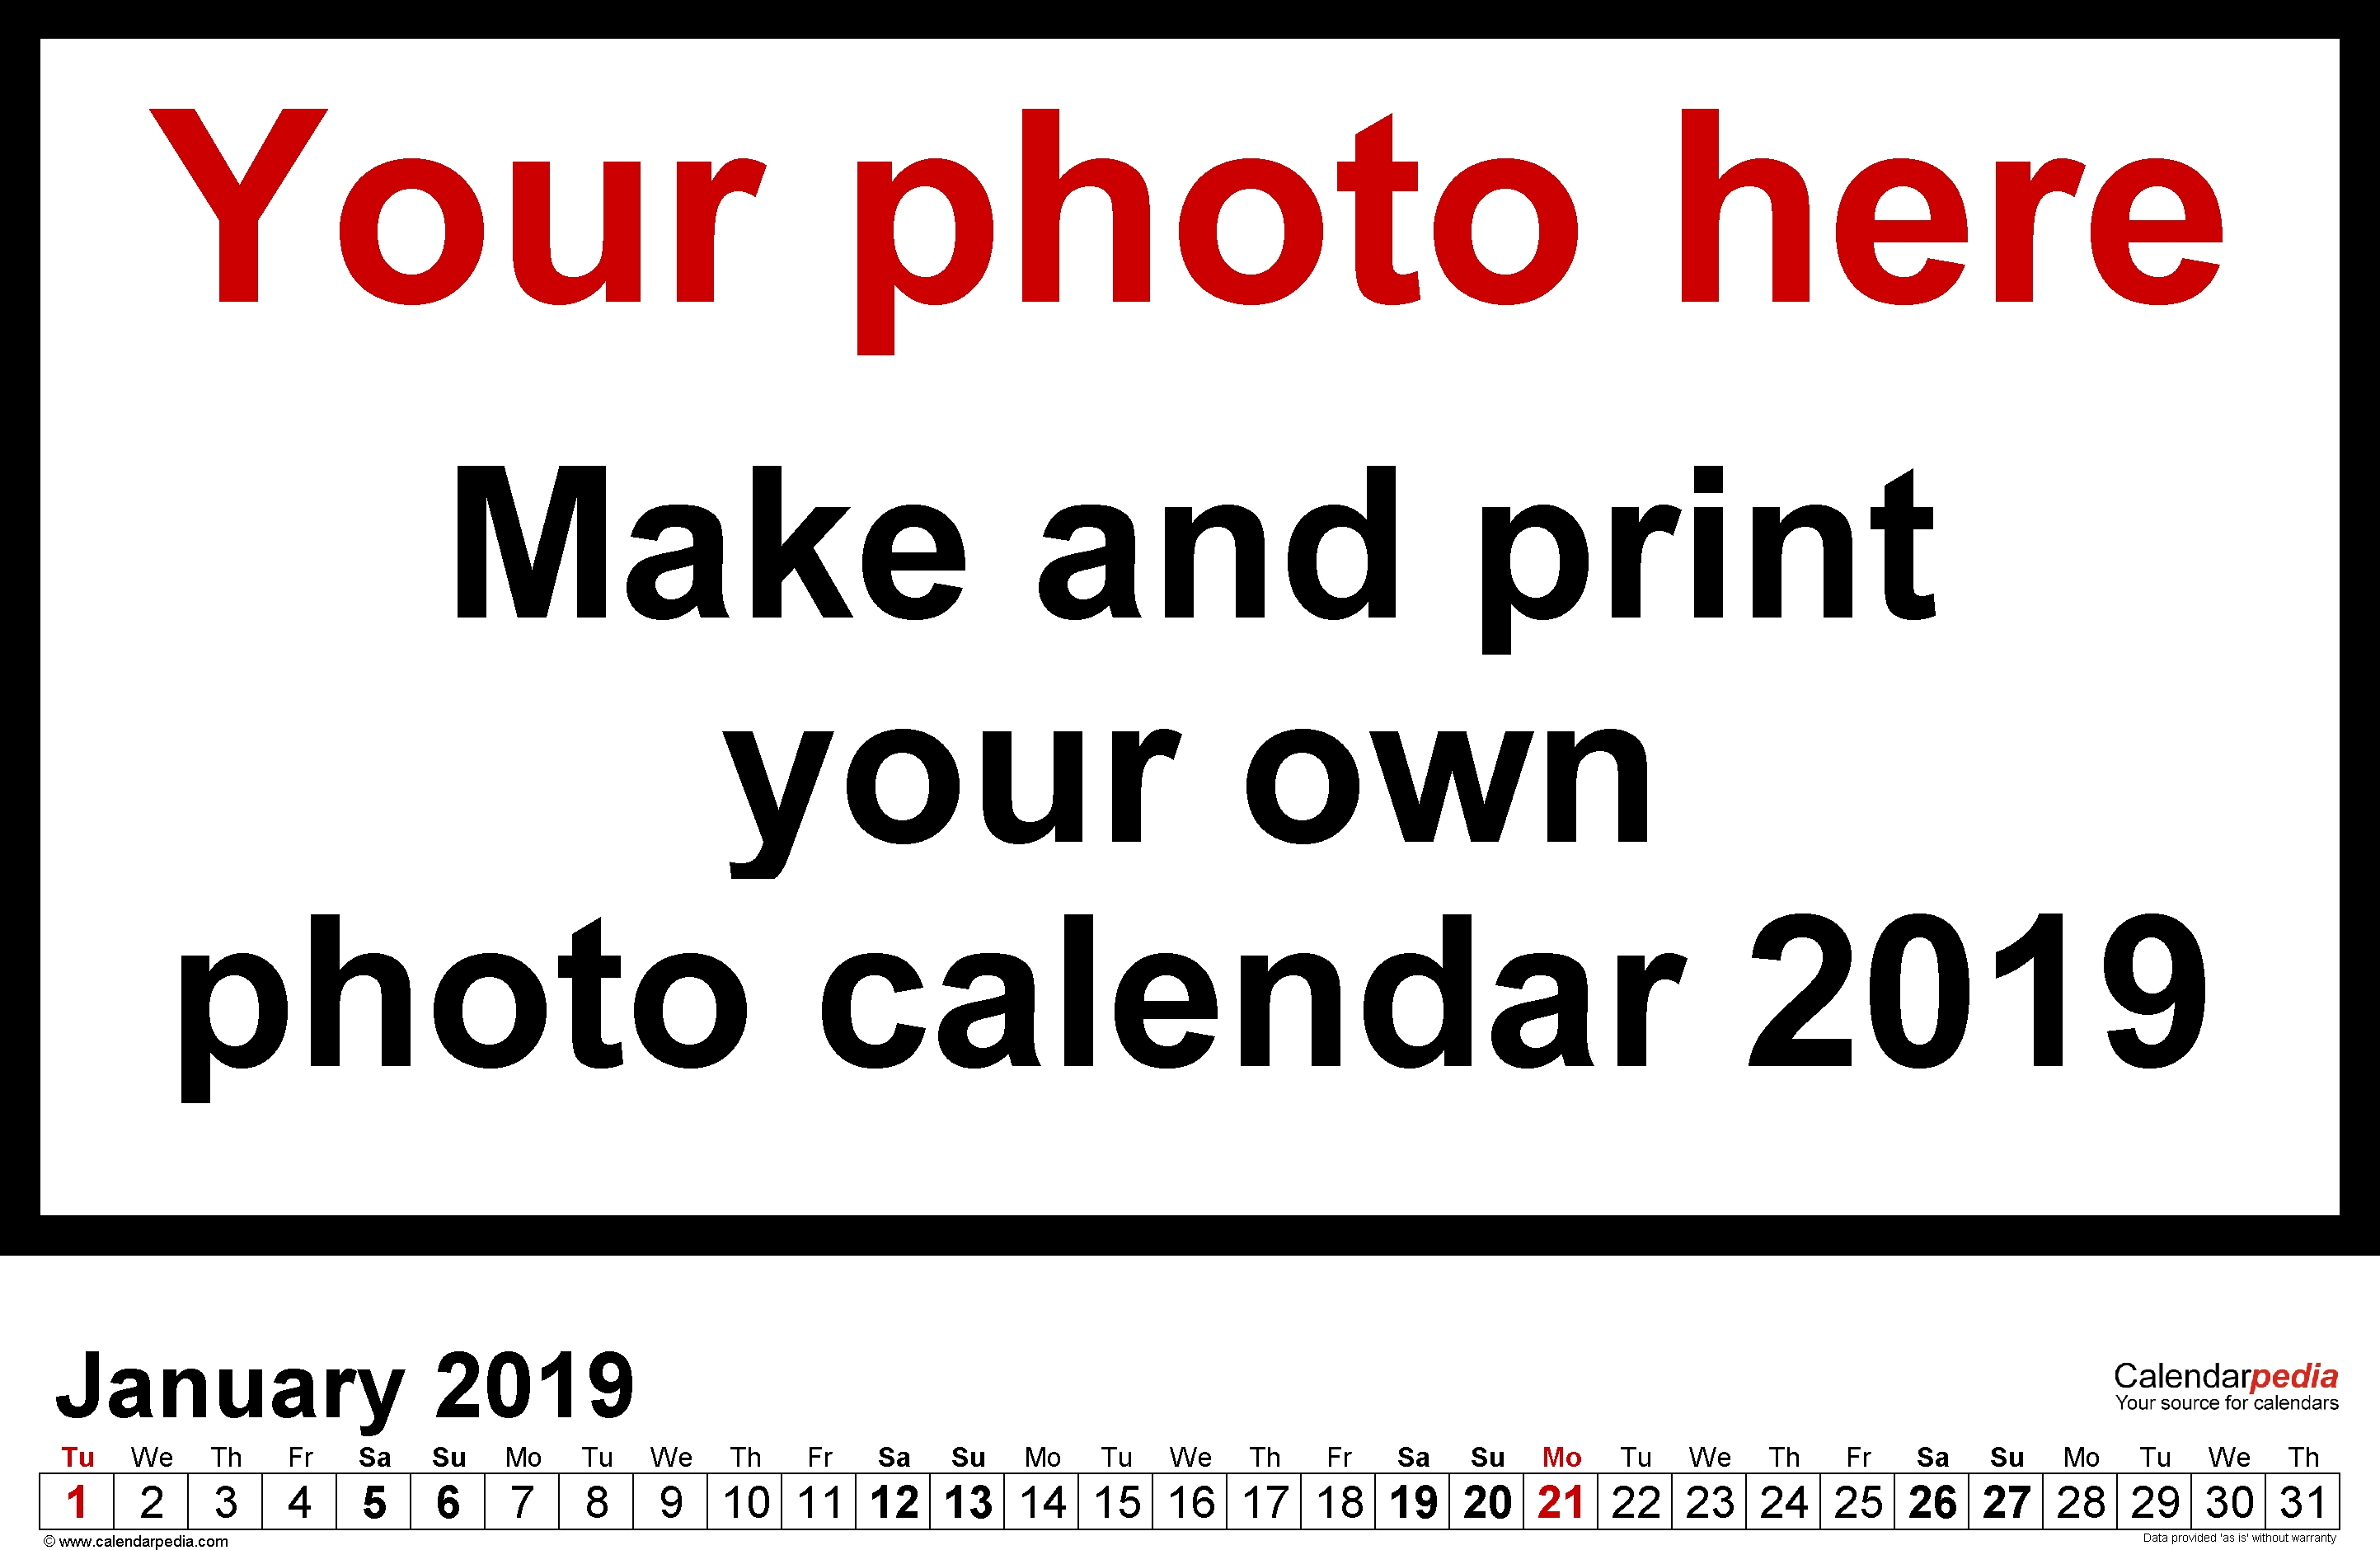 Custom January 2019 Personalized Calendar | January 2019 Calendar Calendar 2019 Custom